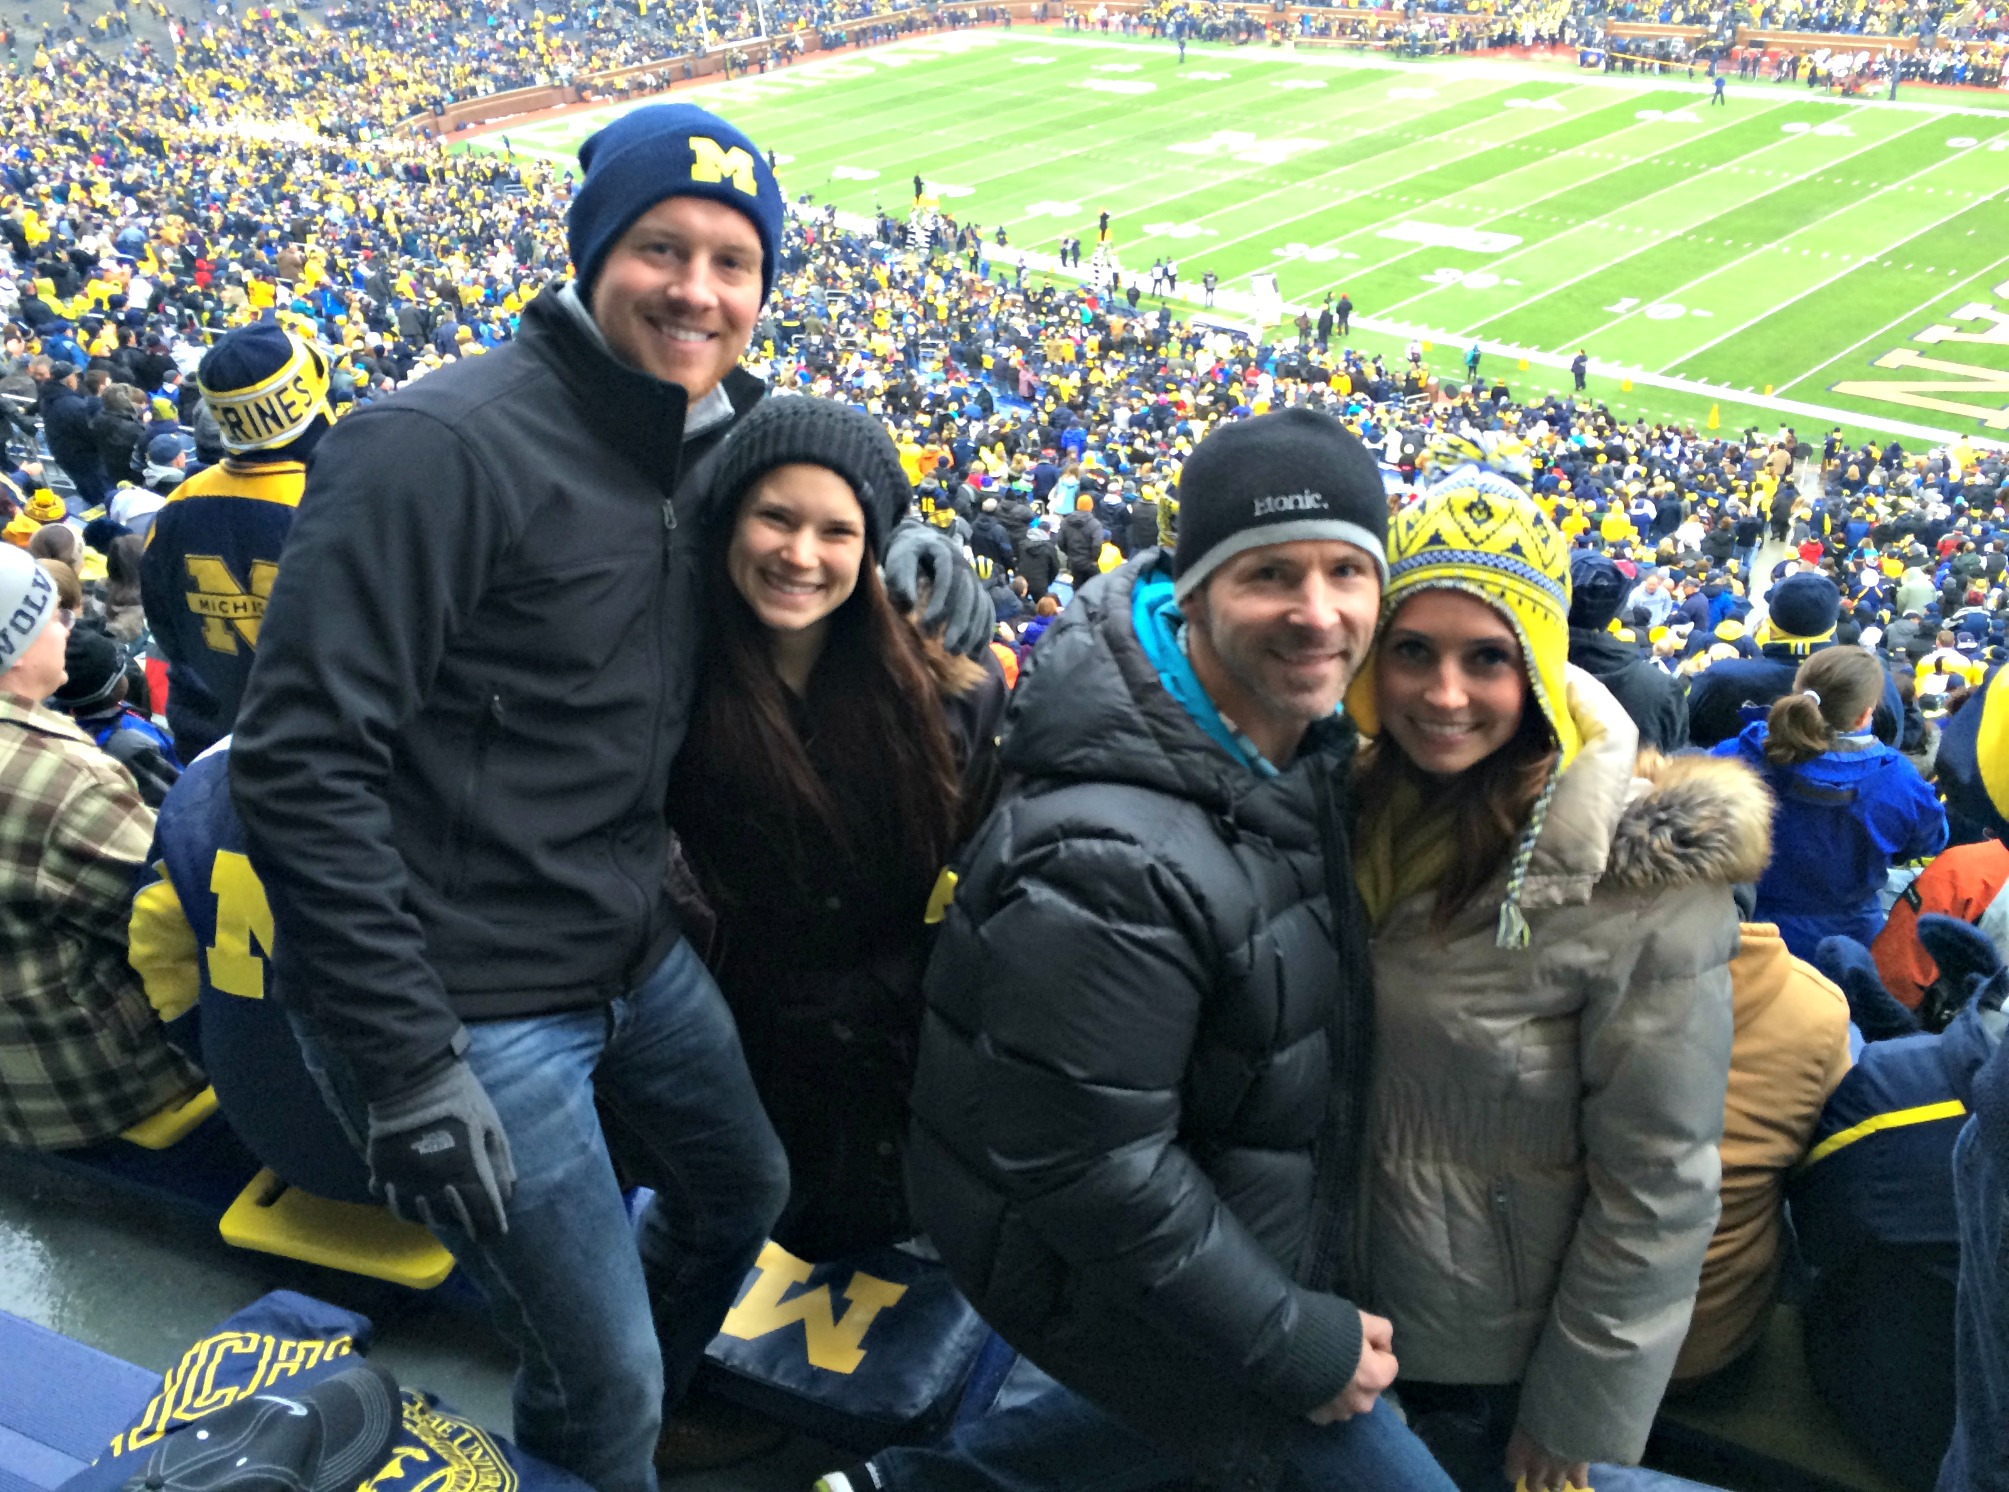 u of michigan game with alex and alex